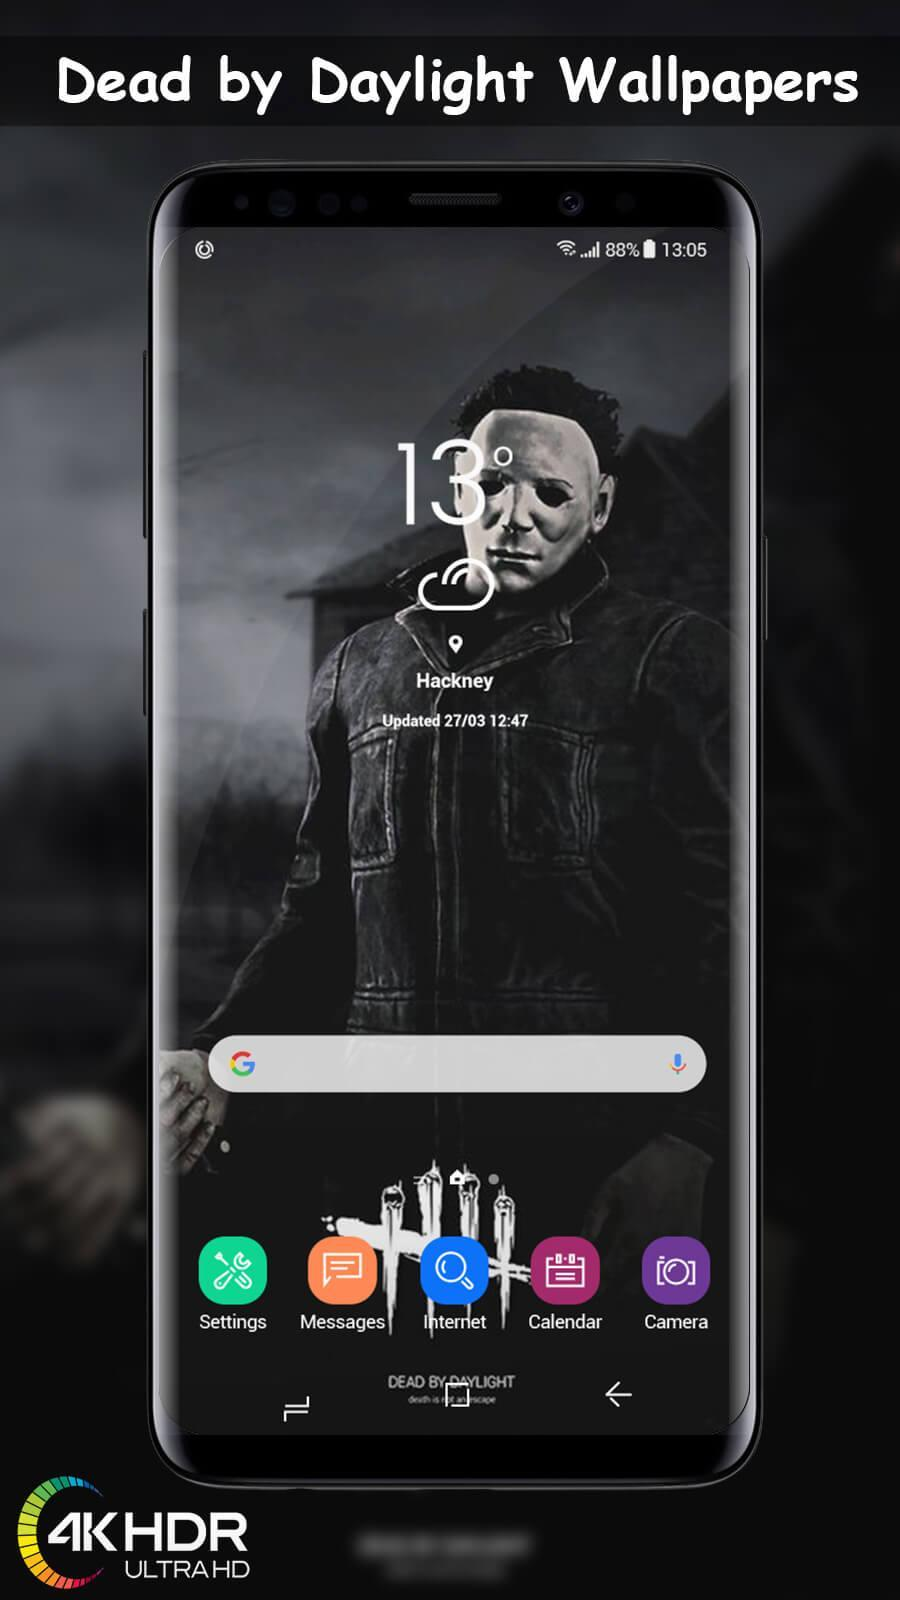 Dbd Wallpapers For Android Apk Download